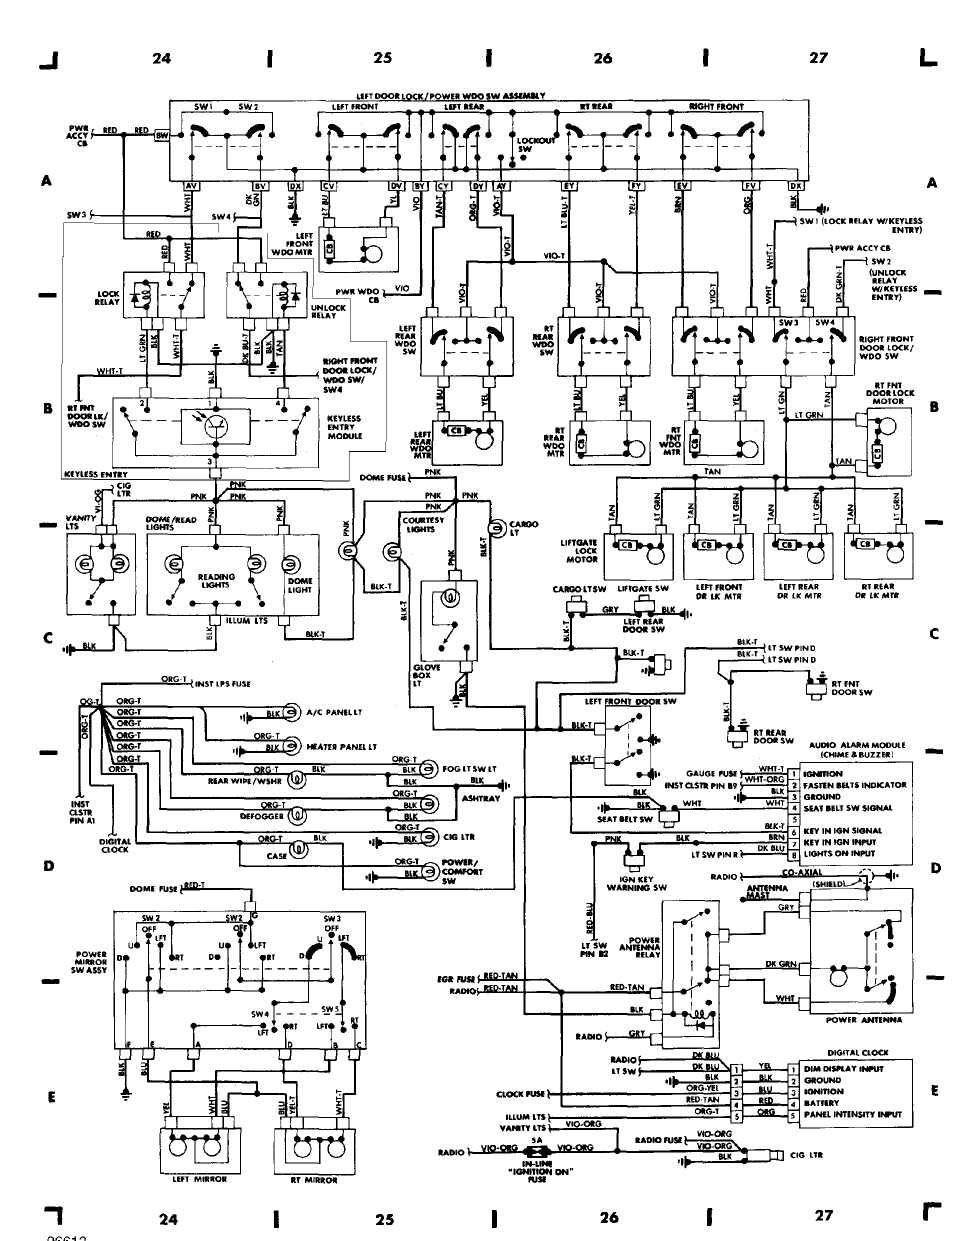 wiring_diagrams_html_61f5e0ad wiring diagrams 1984 1991 jeep cherokee (xj) jeep 1995 jeep grand cherokee wiring diagram at soozxer.org